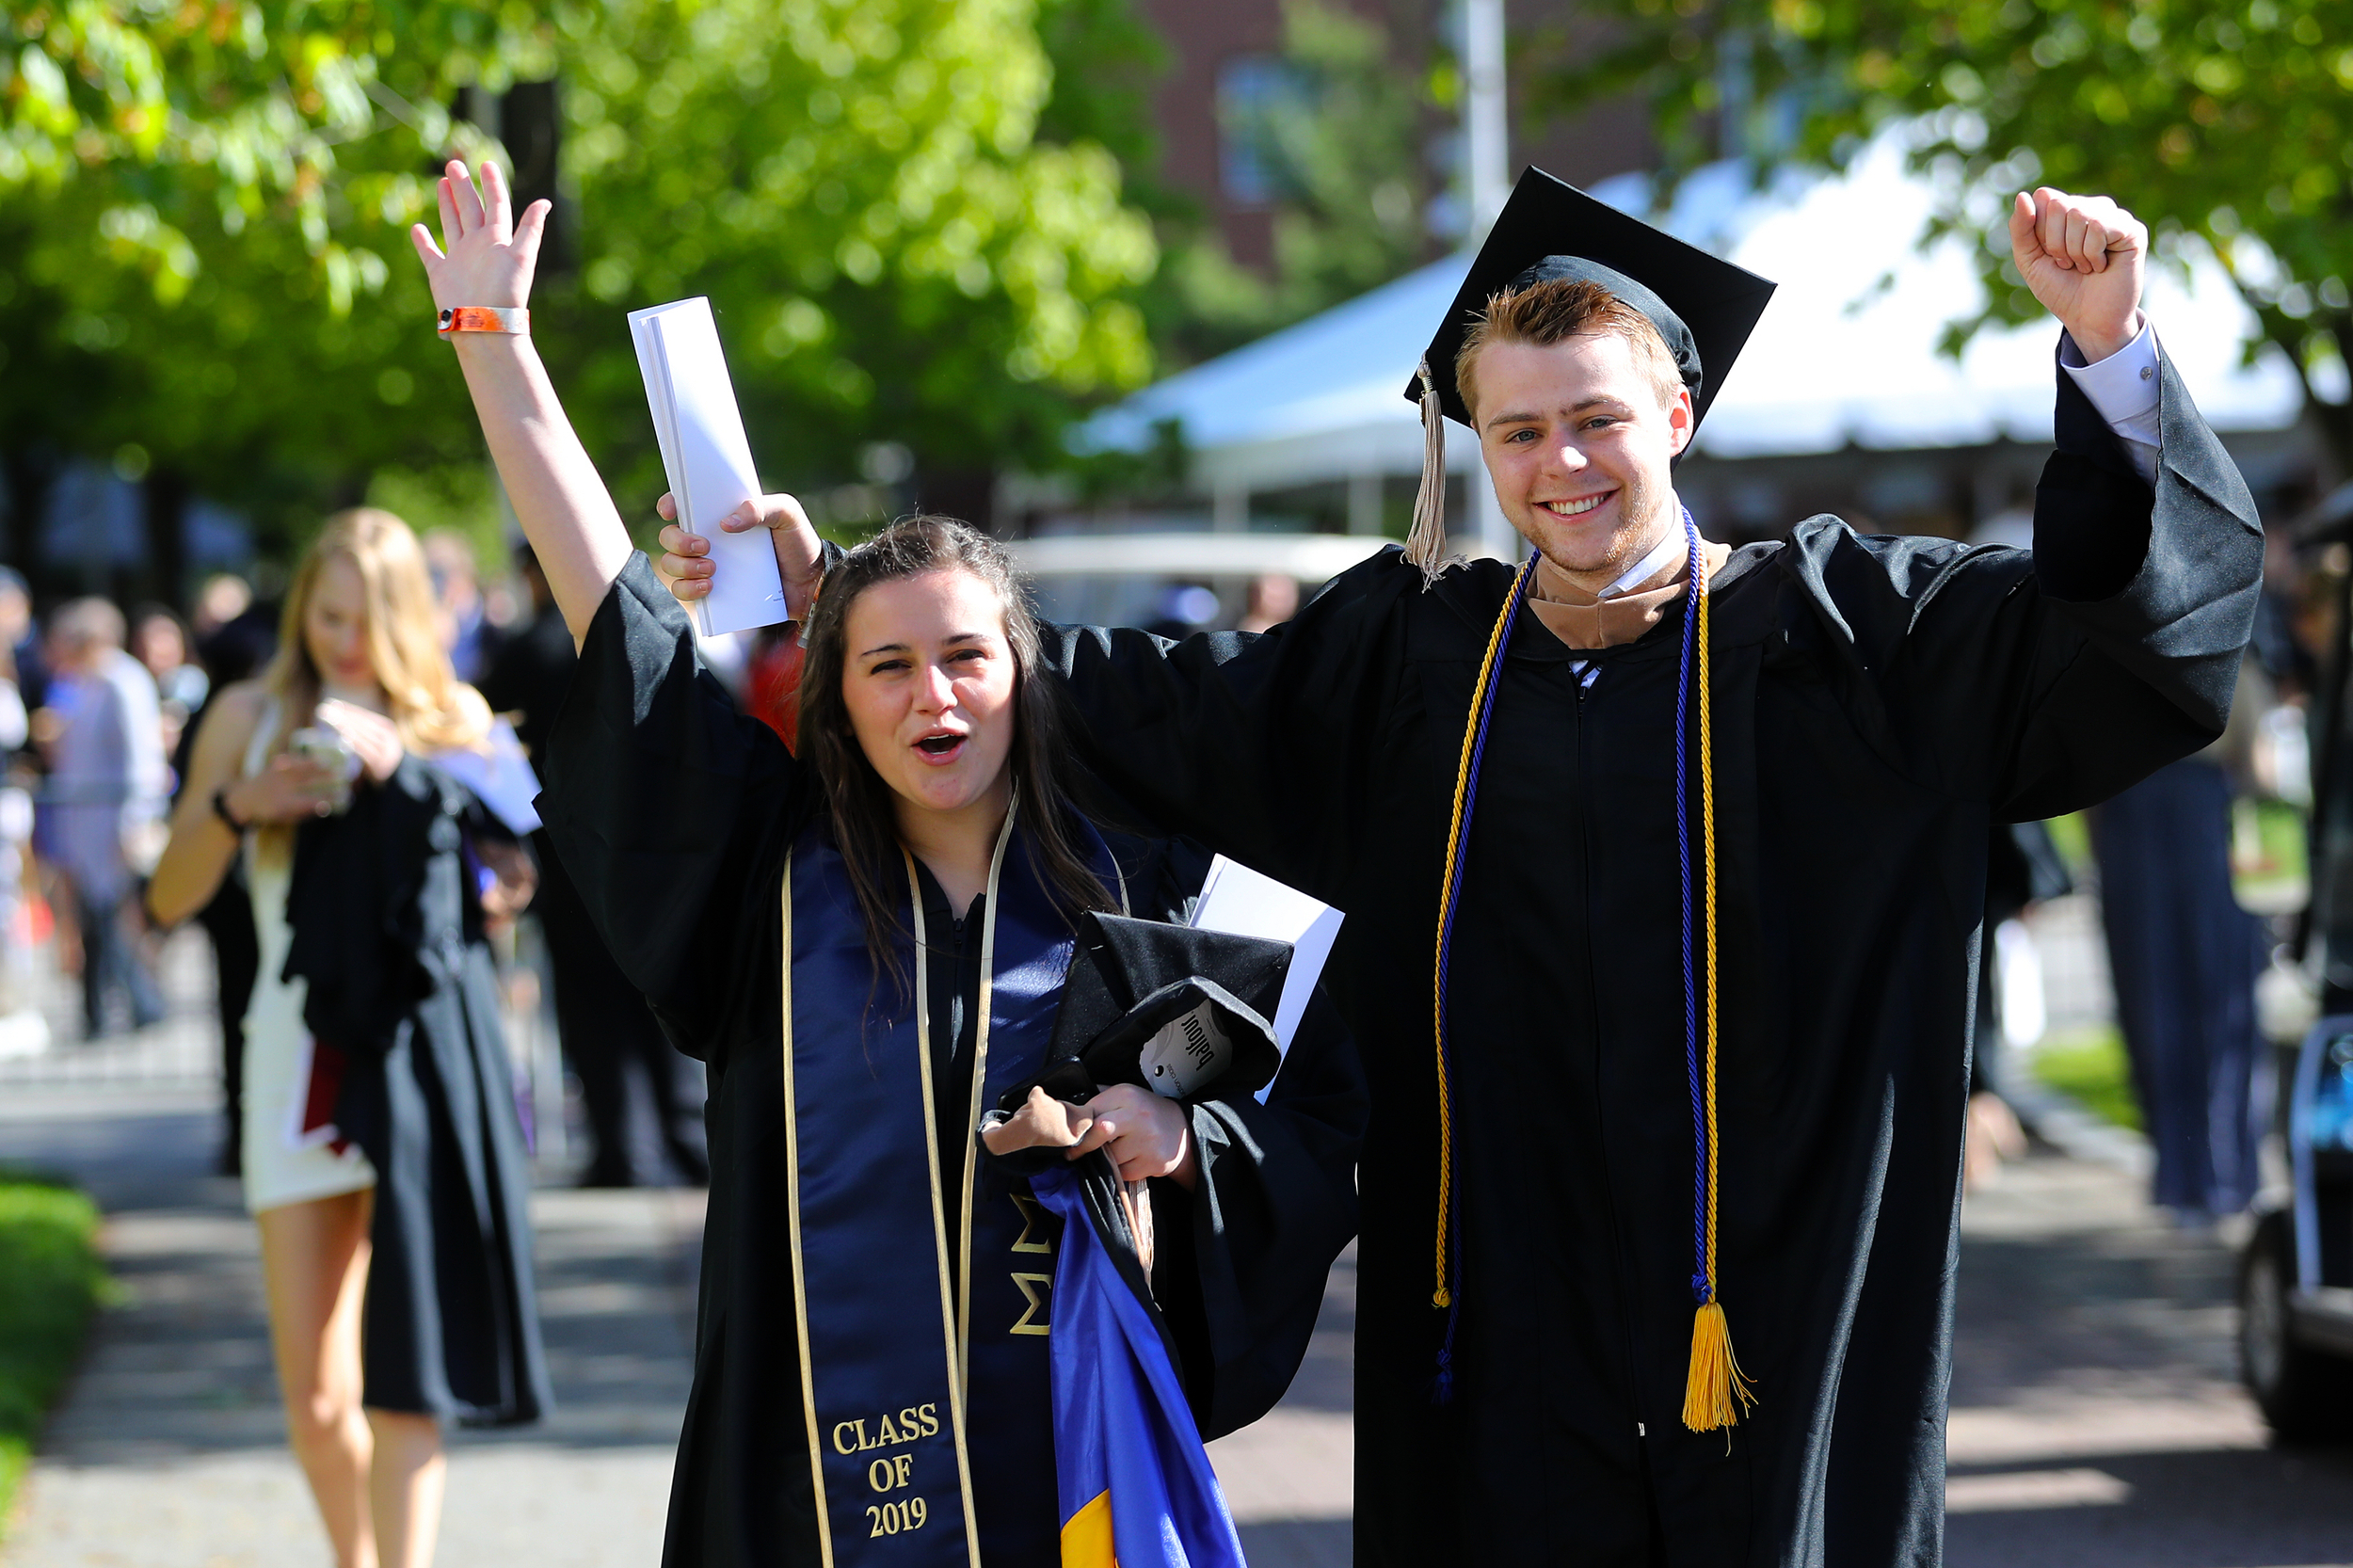 Bentley graduates celebrating at Commencement